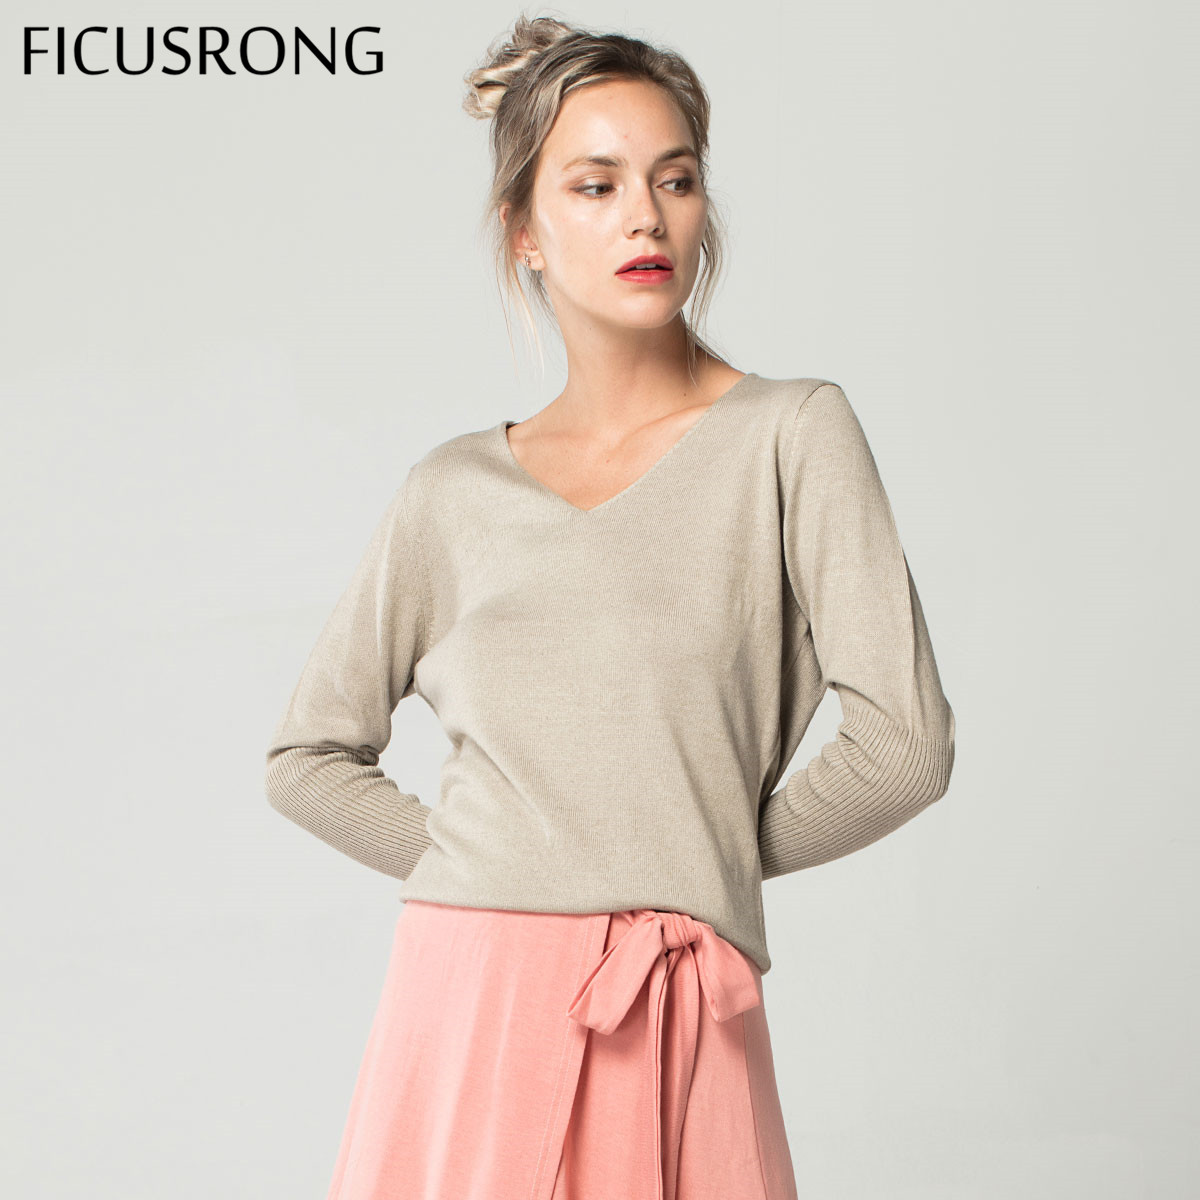 Spring Autumn Ladies V-Neck Cashmere Sweater Loose Fashion Plus Size 4XL Solid Women's Wool Bat Pullover Sweater FICUSRONG